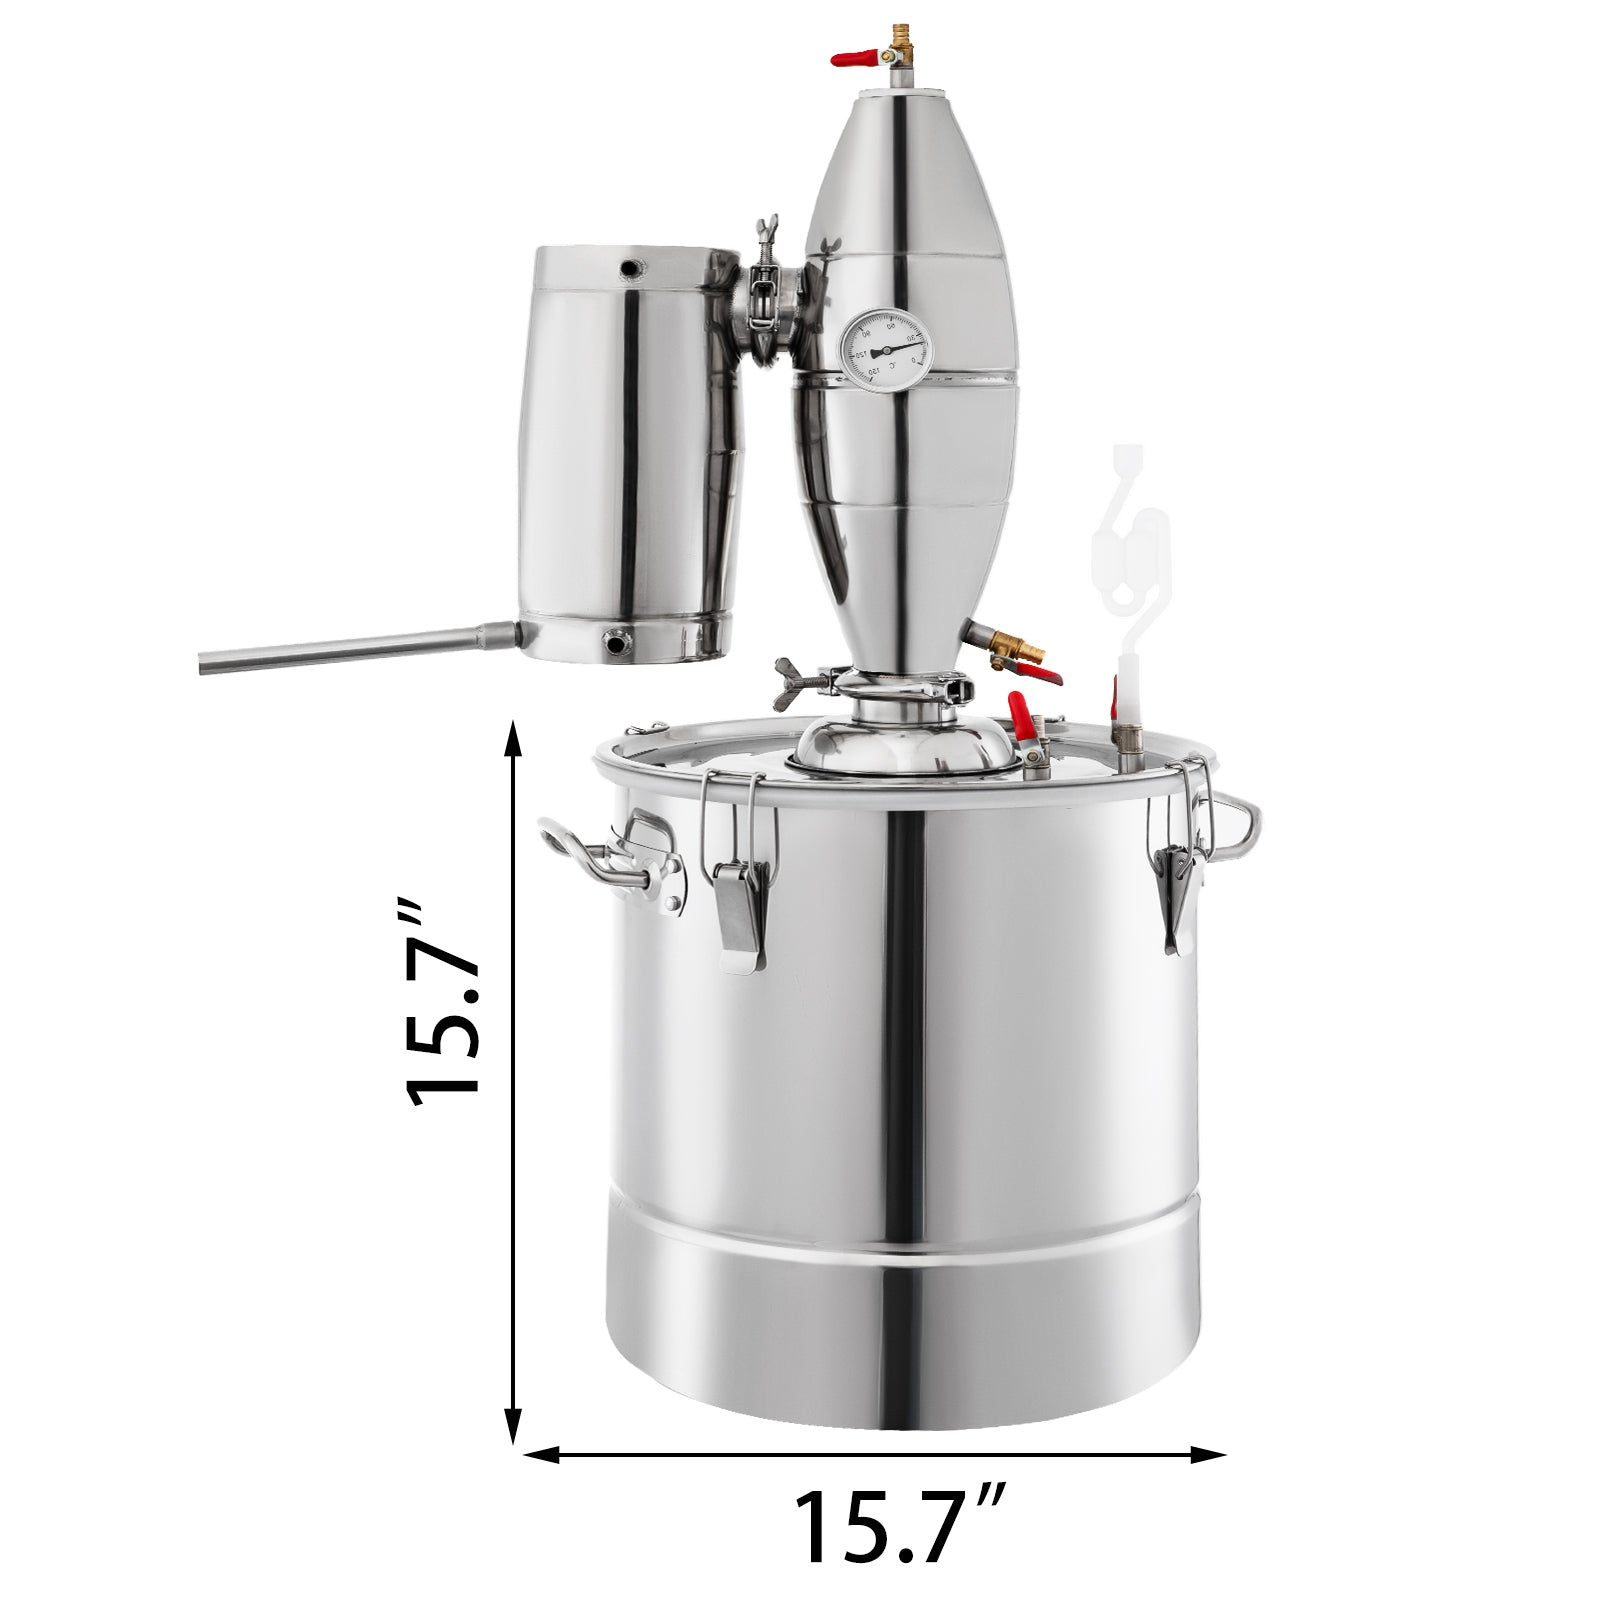 50L 13 Gal Water Wine Alcohol Distiller Moonshine Still Boiler Stainless Copper